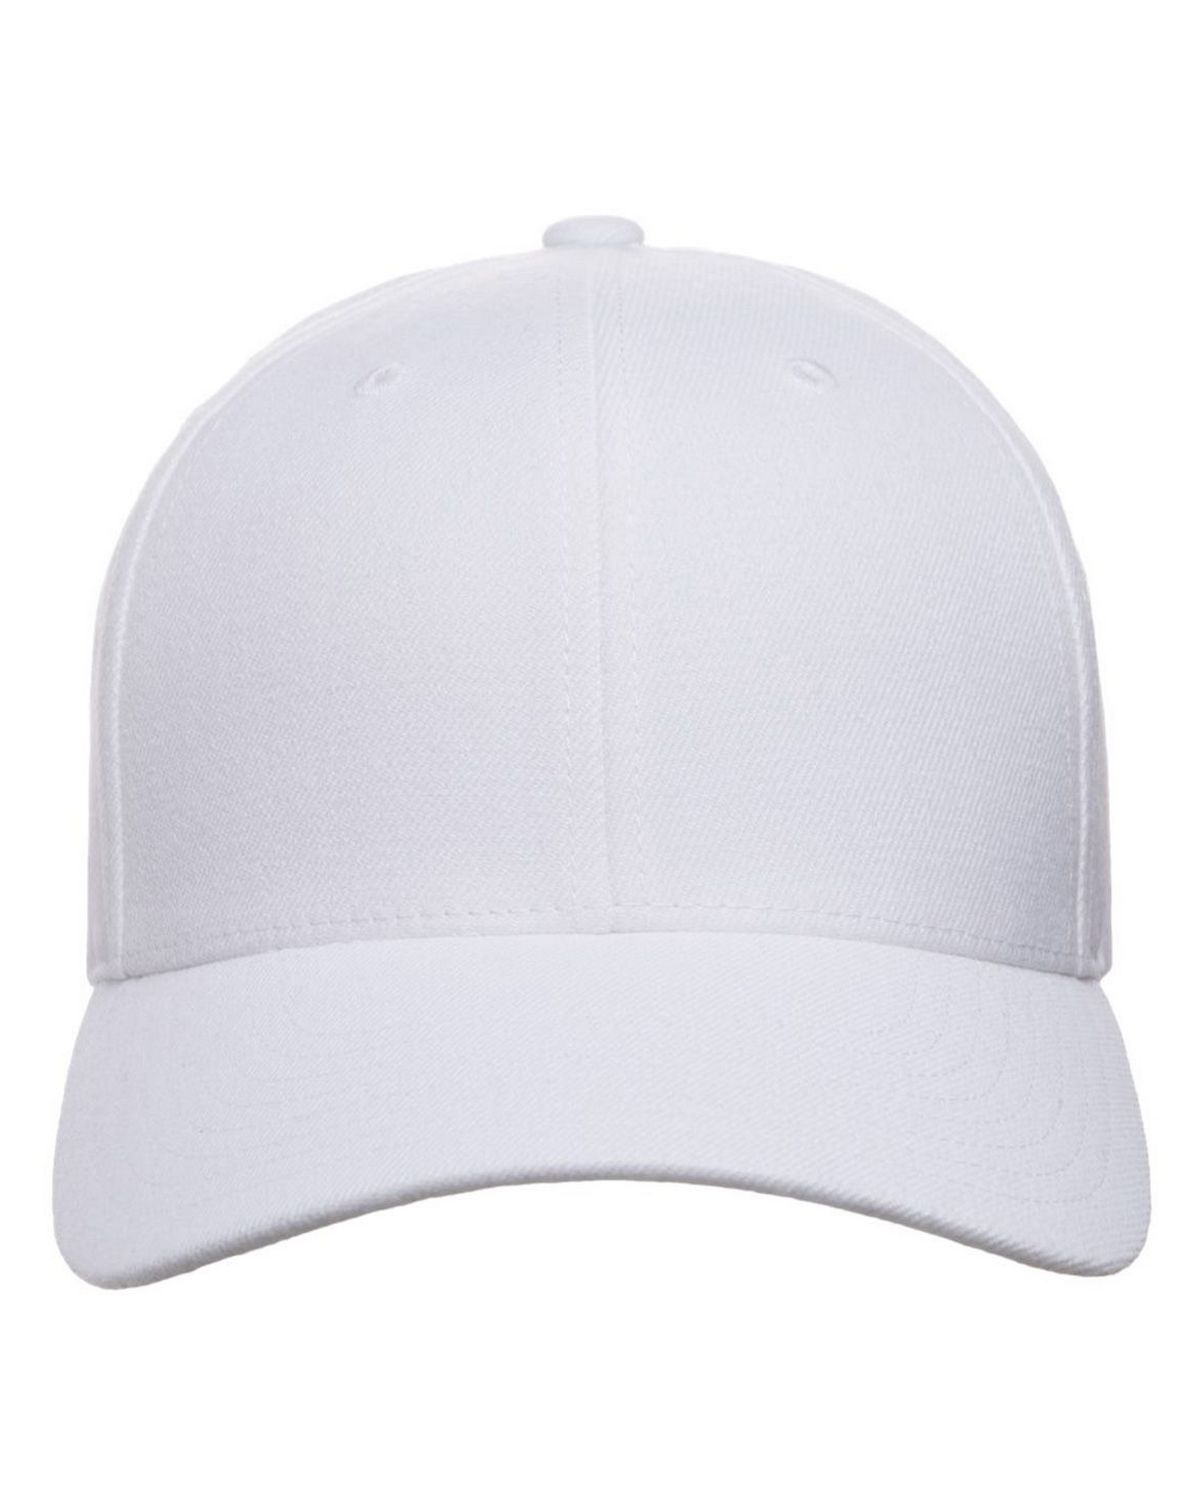 Yupoong 6789M Premium Curved Visor Snapback Cap - Free Shipping ... 85c6faaee75